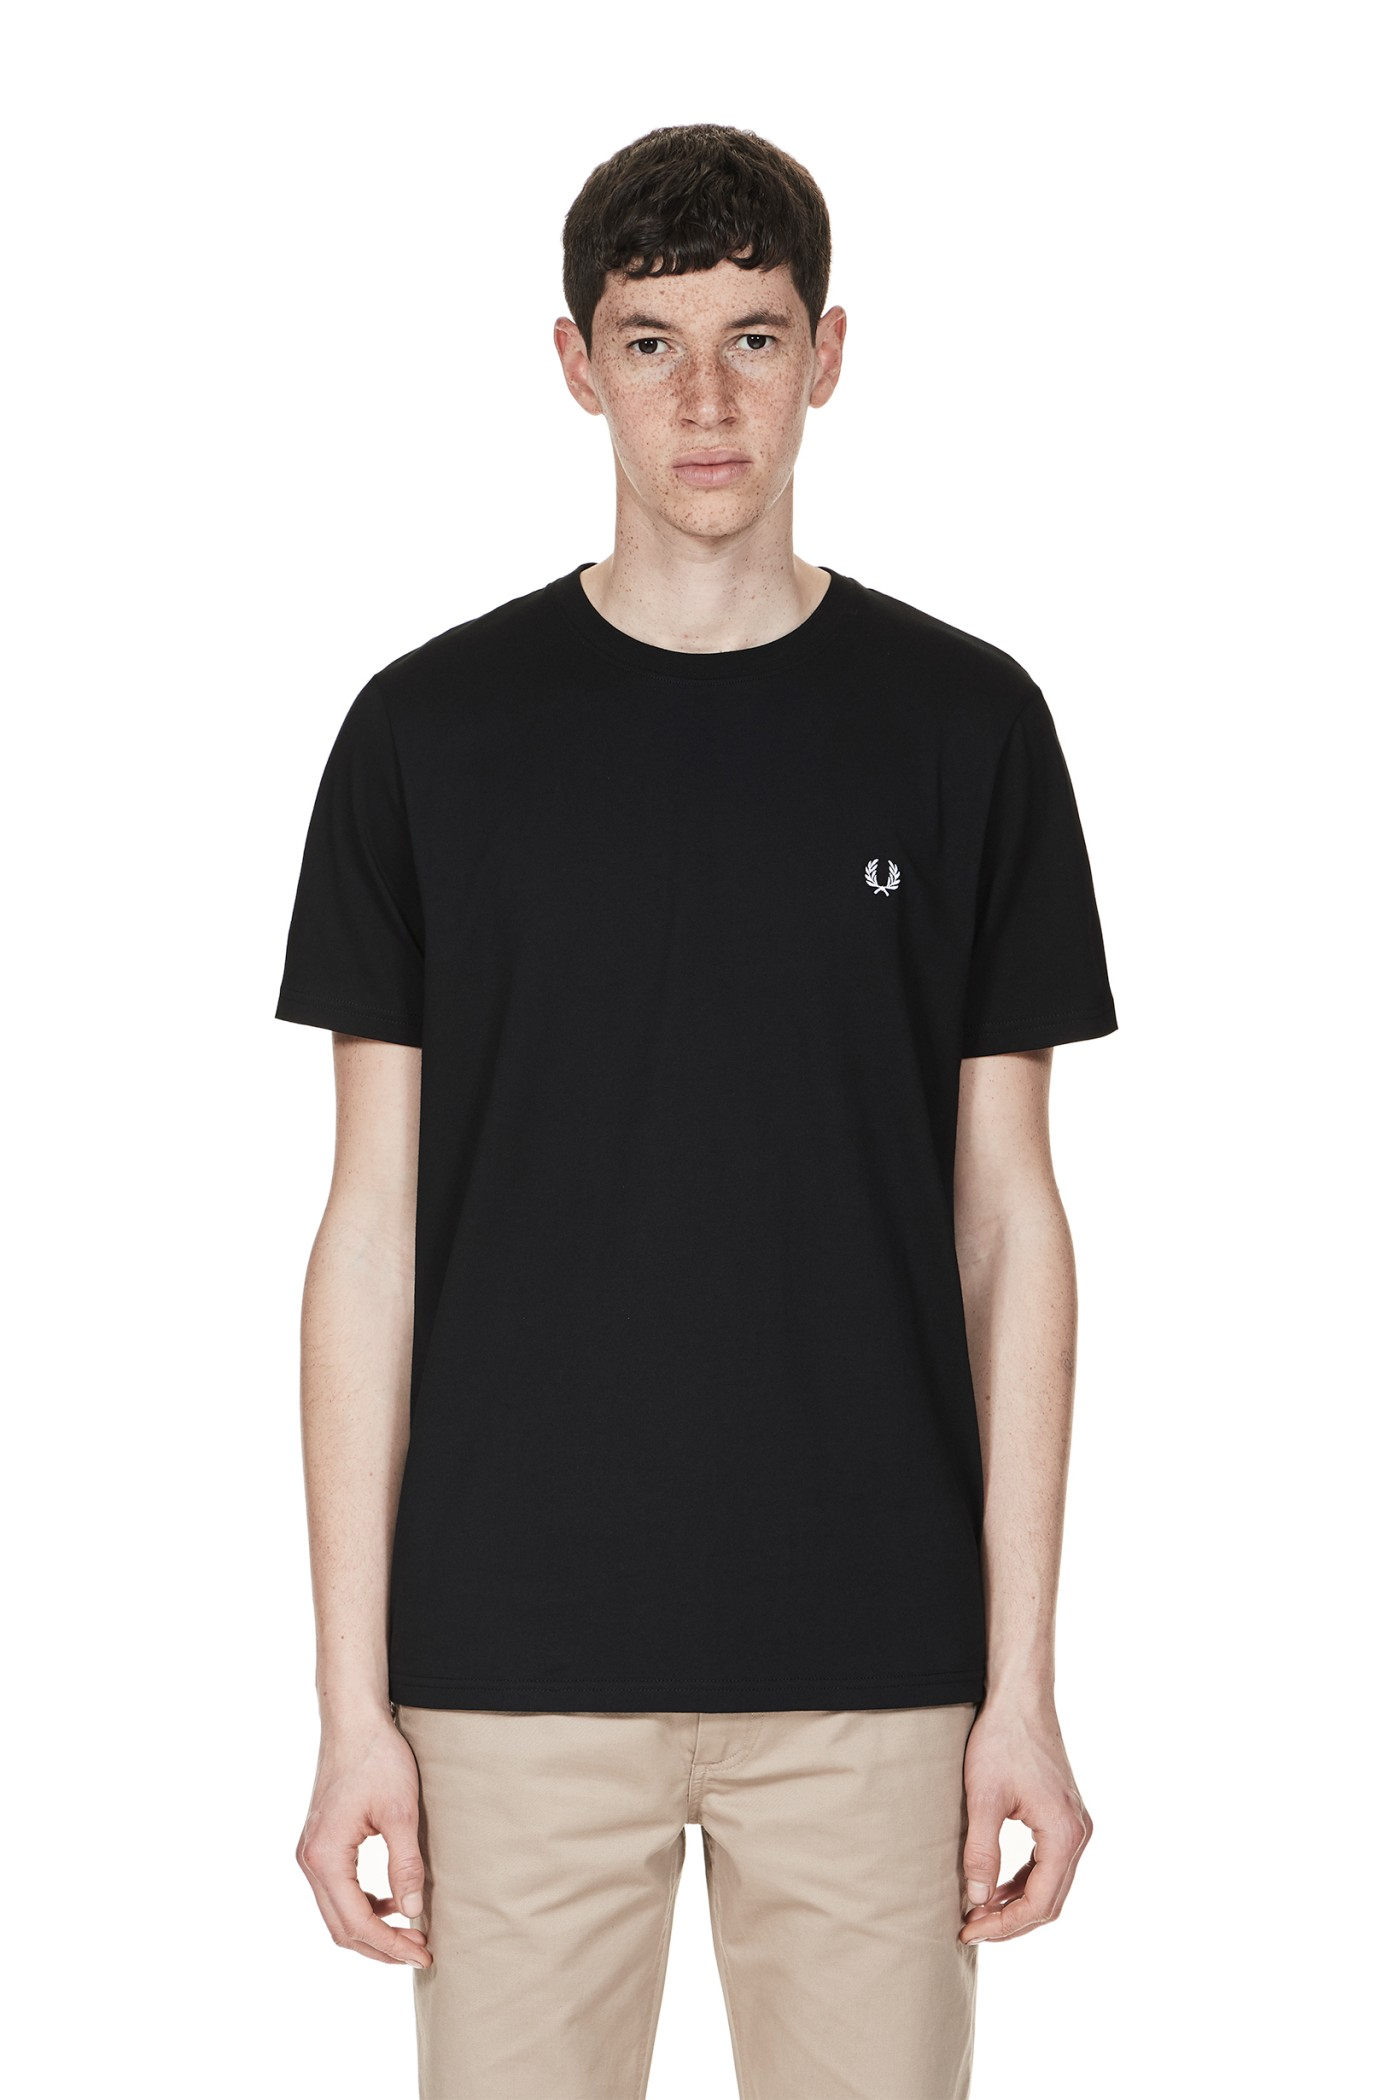 Fred Perry - Crew Neck T-Shirt Black